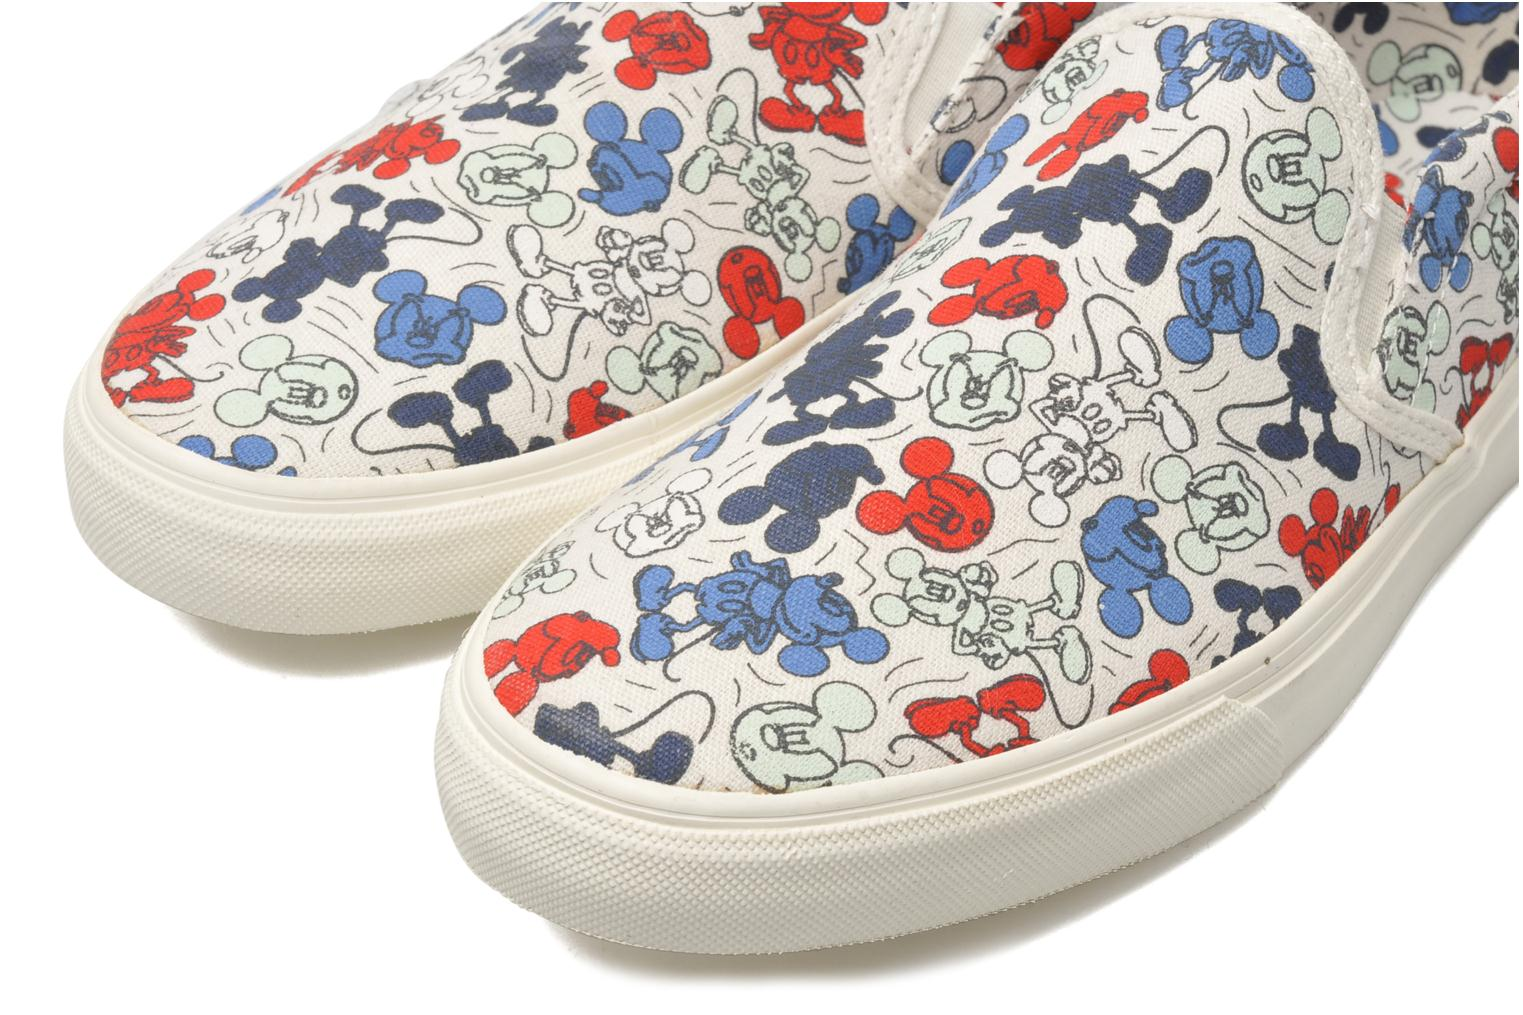 Tennis Slip On H Hawaii Slip On Mosket